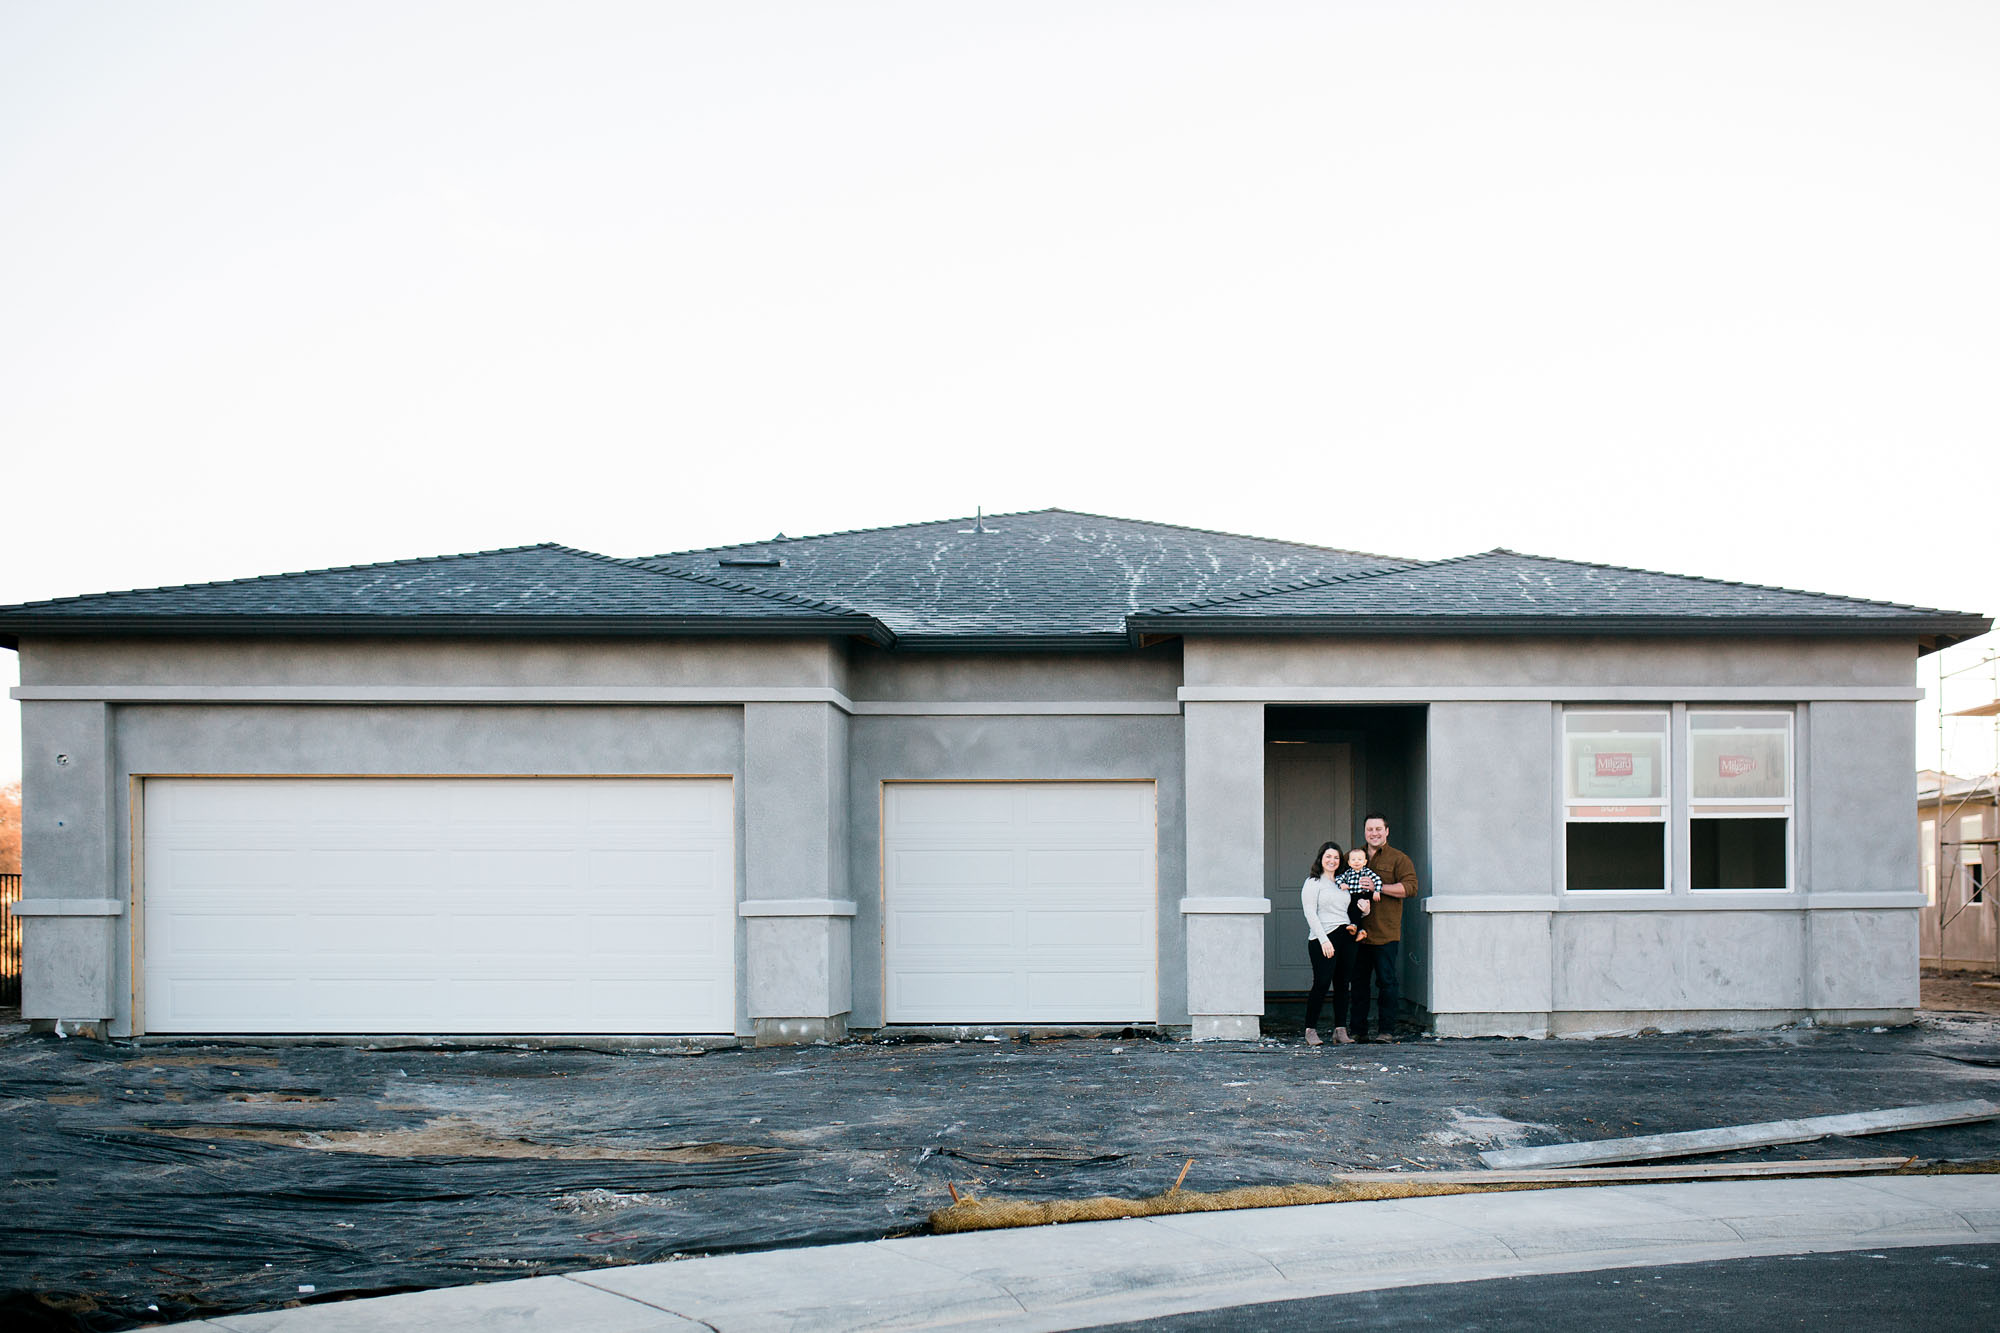 A family of three stands in front of the house they are building in the Sacramento area of Northern California.